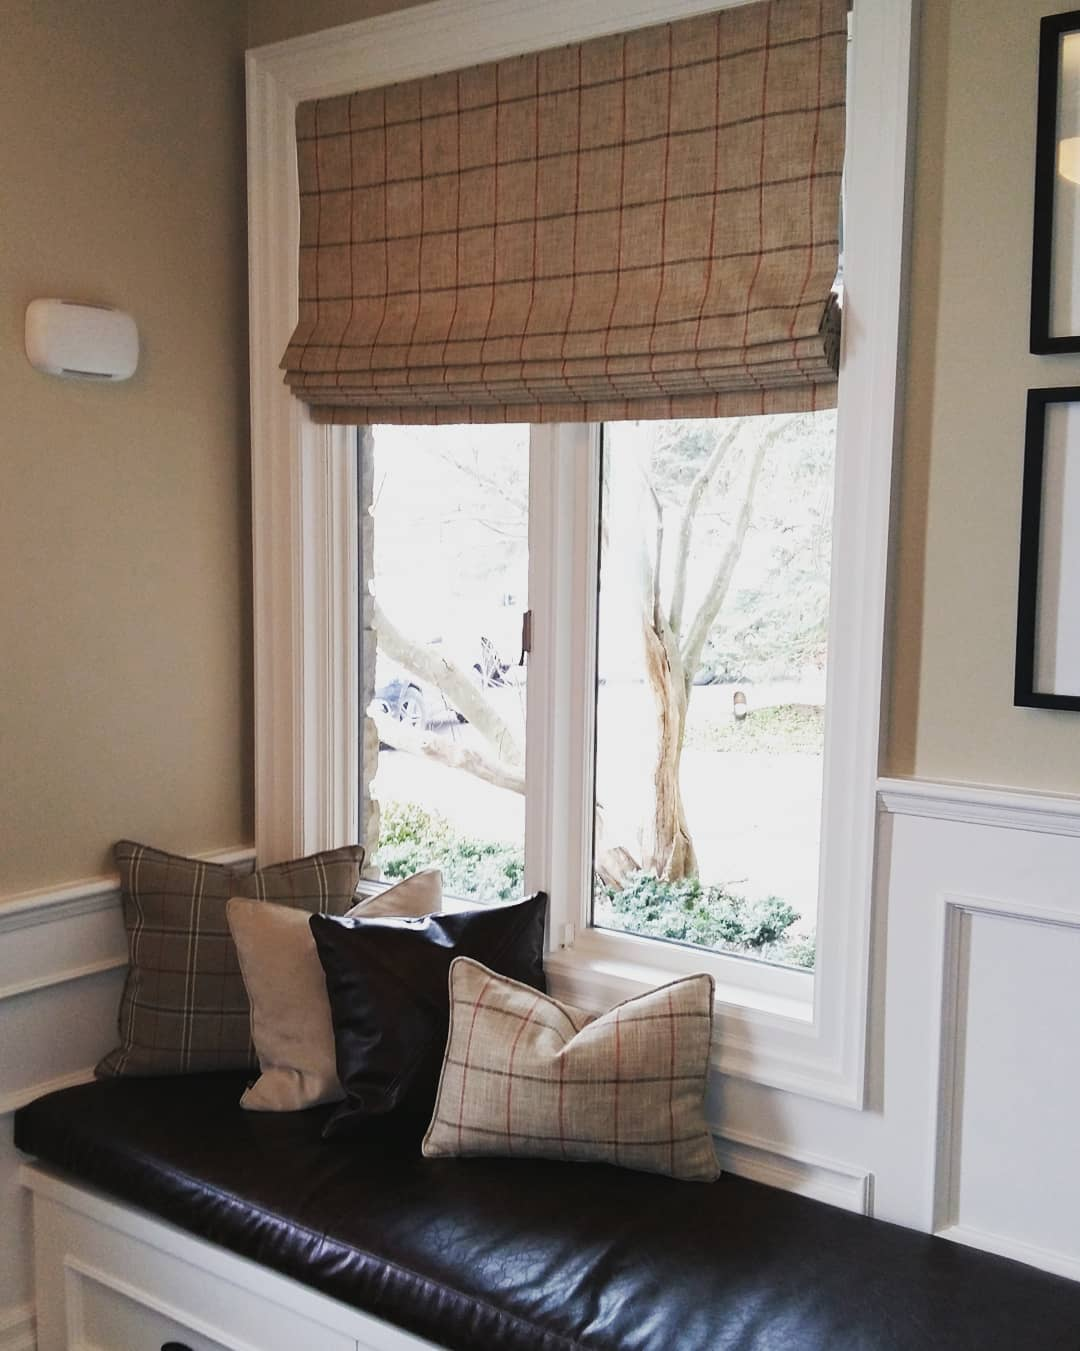 DIY Custom Roman Shades with Practical Master Classes and Photos. Sleeper at the window sill